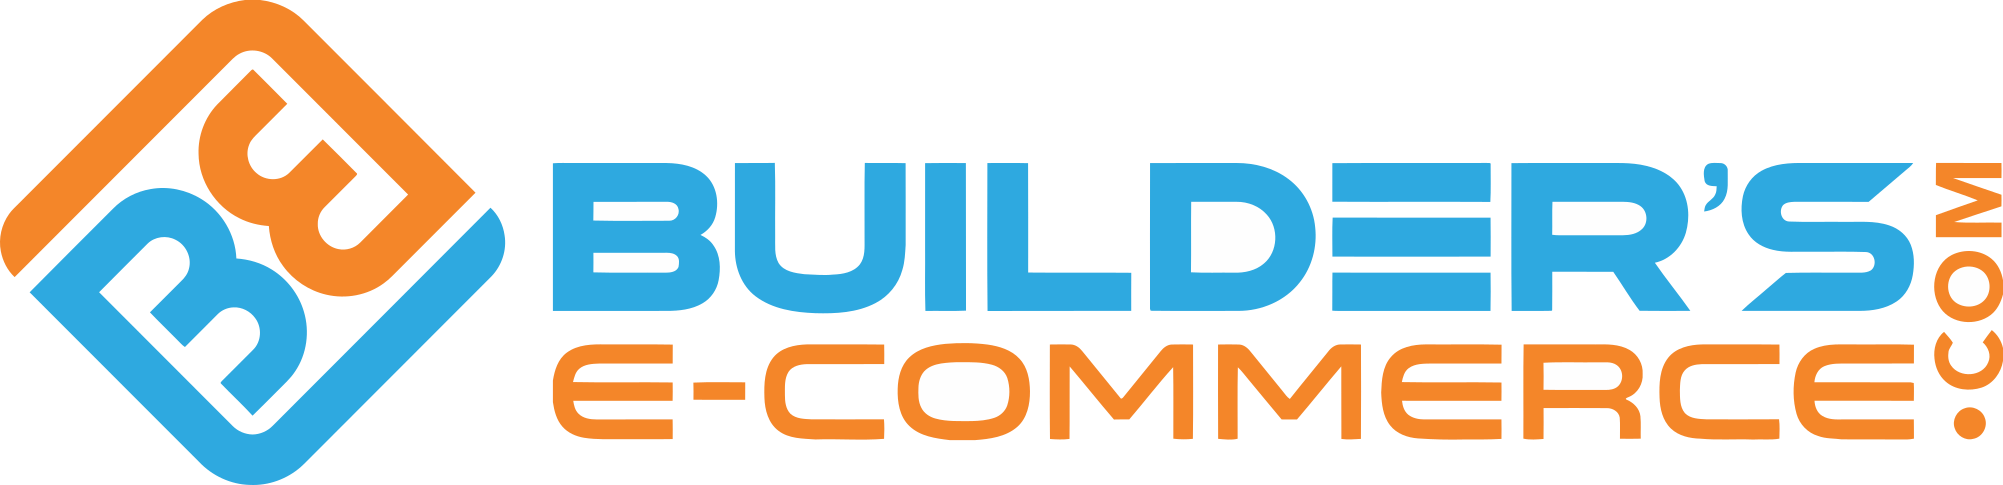 Builder's E-Commerce Logo